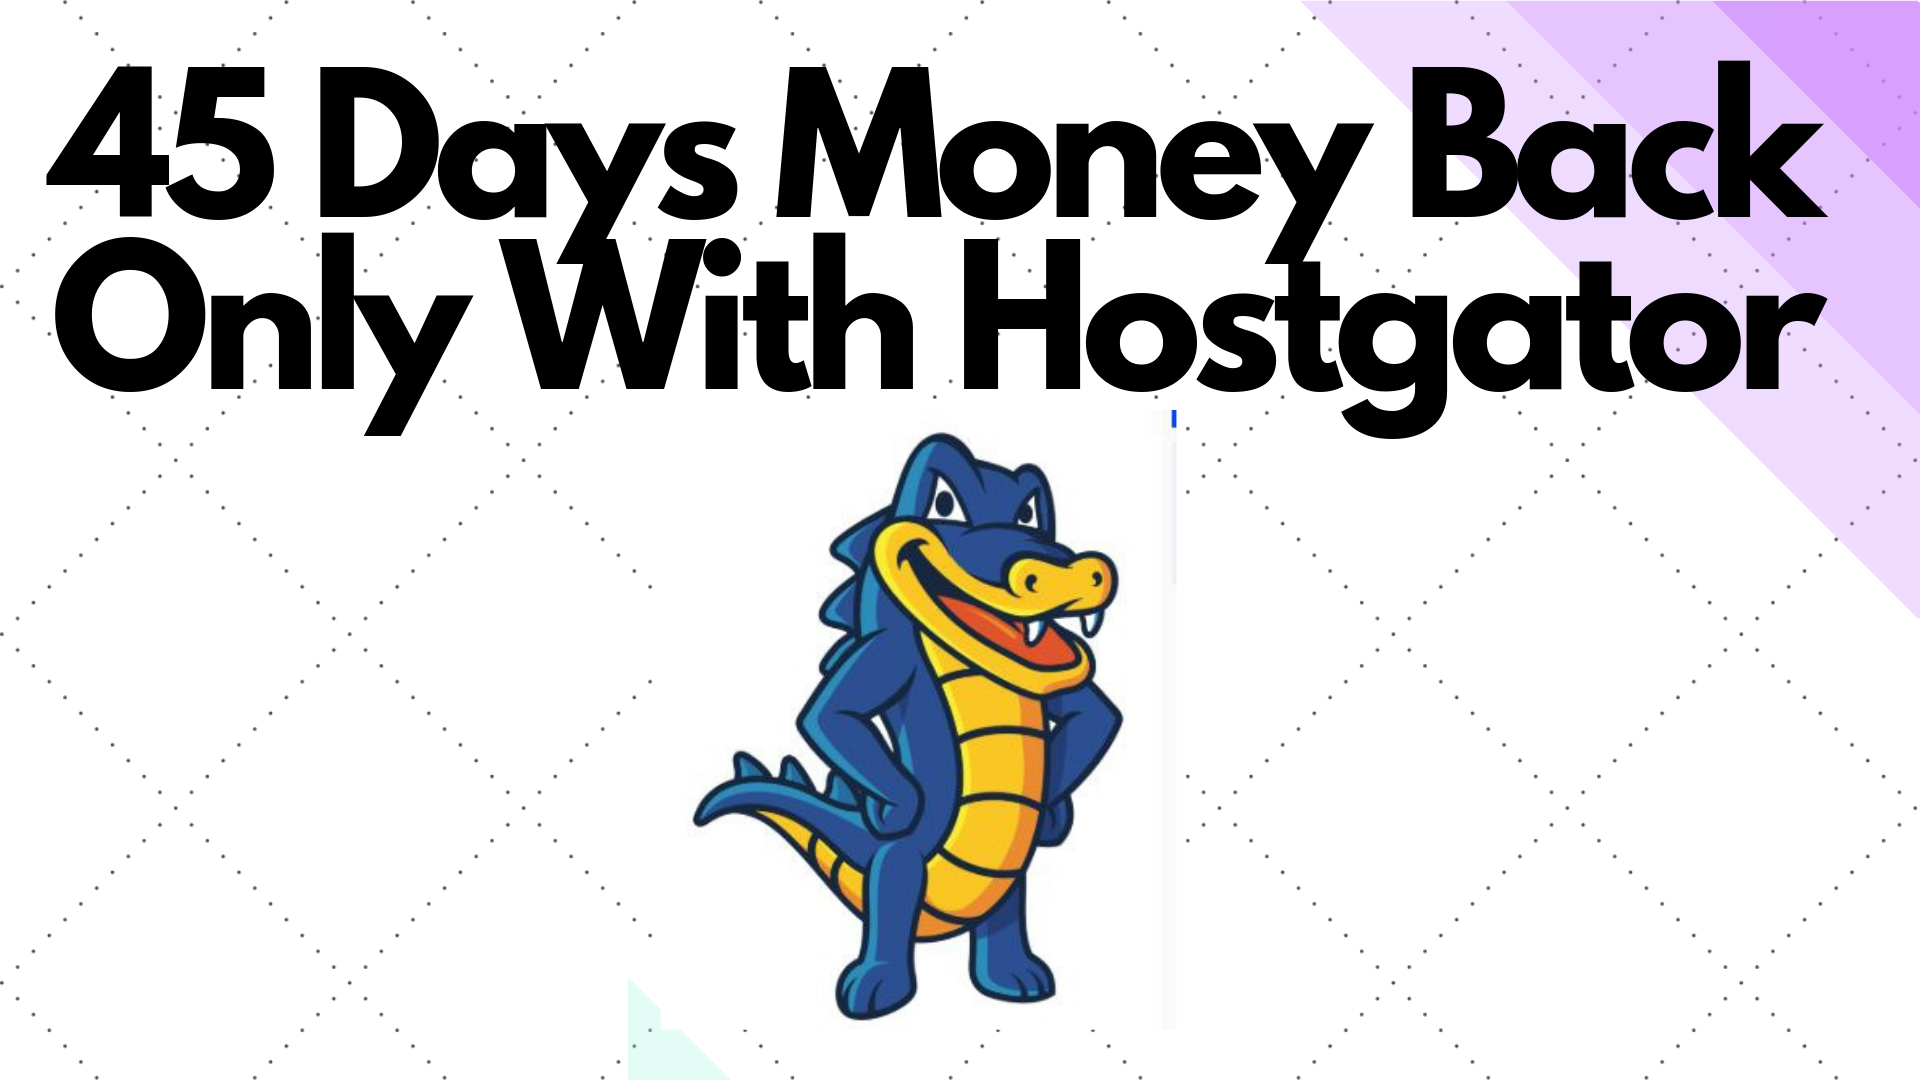 Hostgator 90% off discount, Return policy